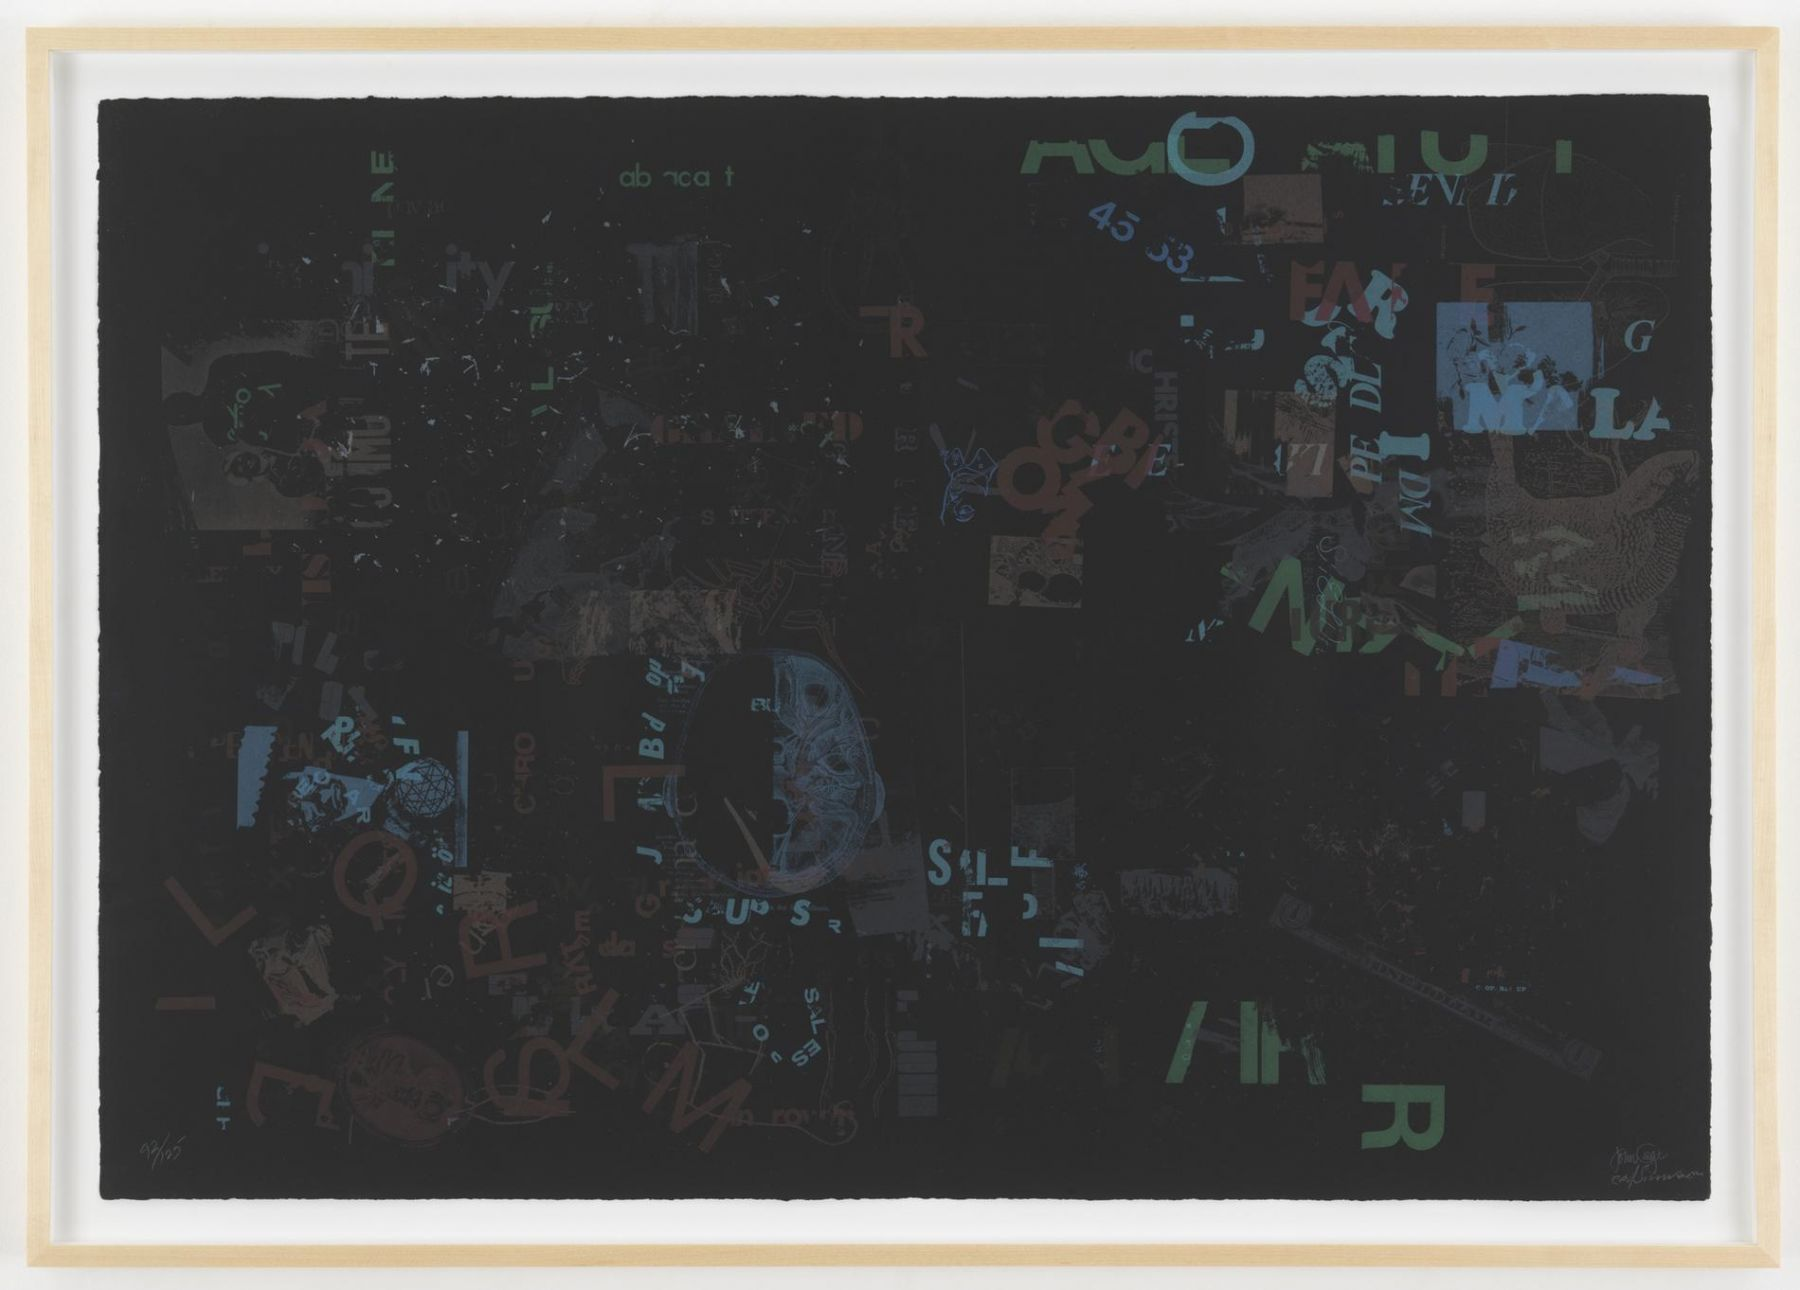 , JOHN CAGENot Wanting to Say Anything About Marcel, Litho A,1969Lithograph on black paper28 x 39 1/2 in. (71.1 x 100.3 cm) Edition of 125